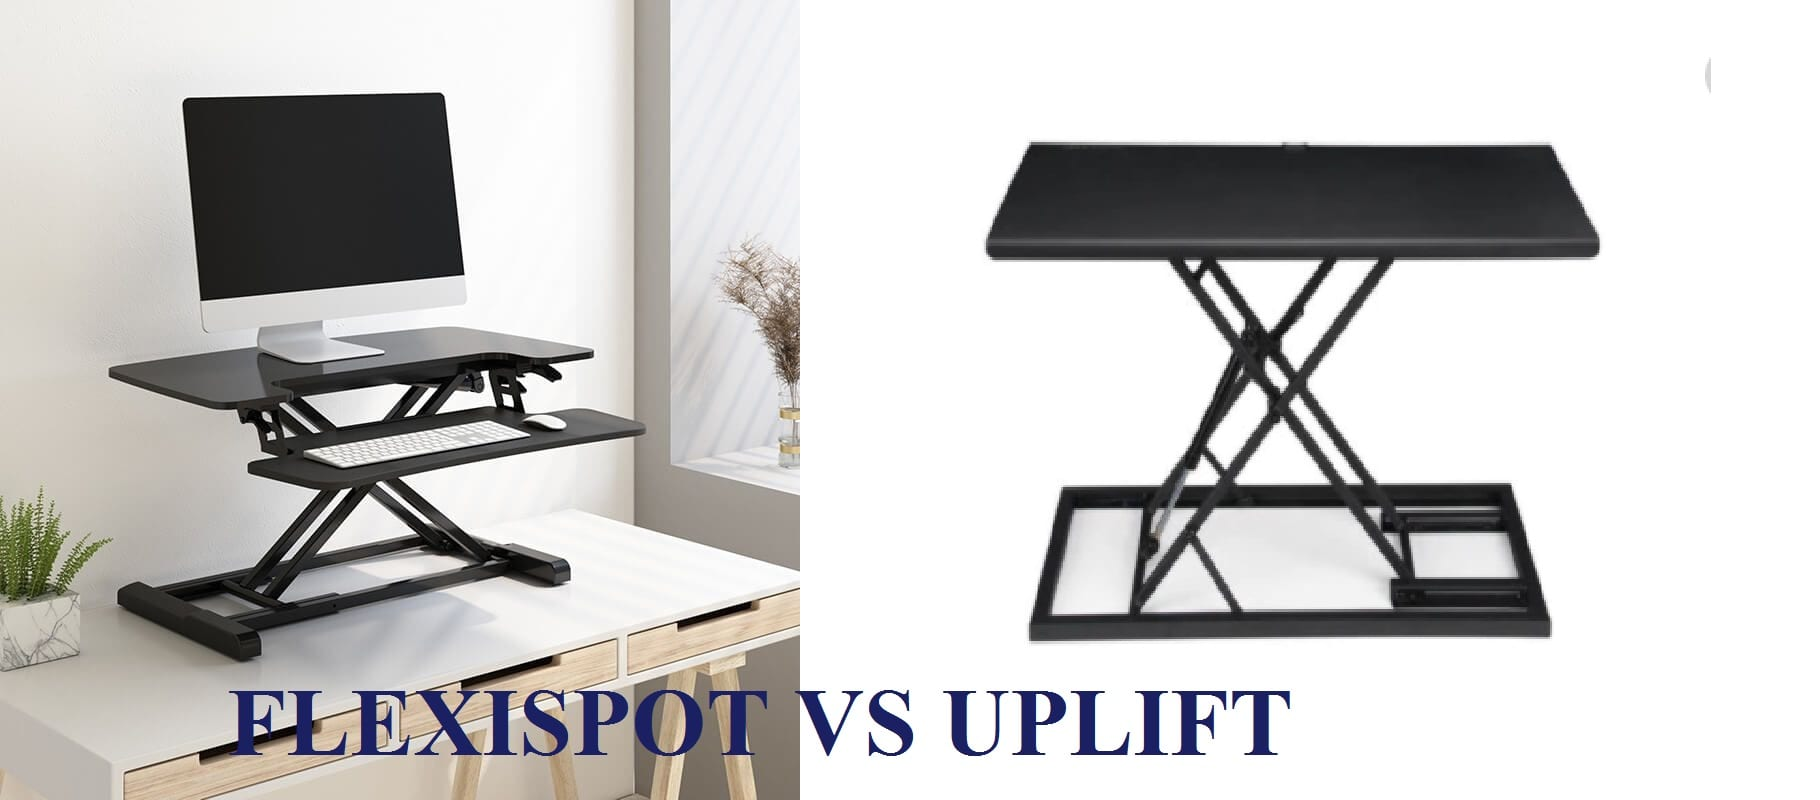 Which is better between Flexispot vs Uplift?